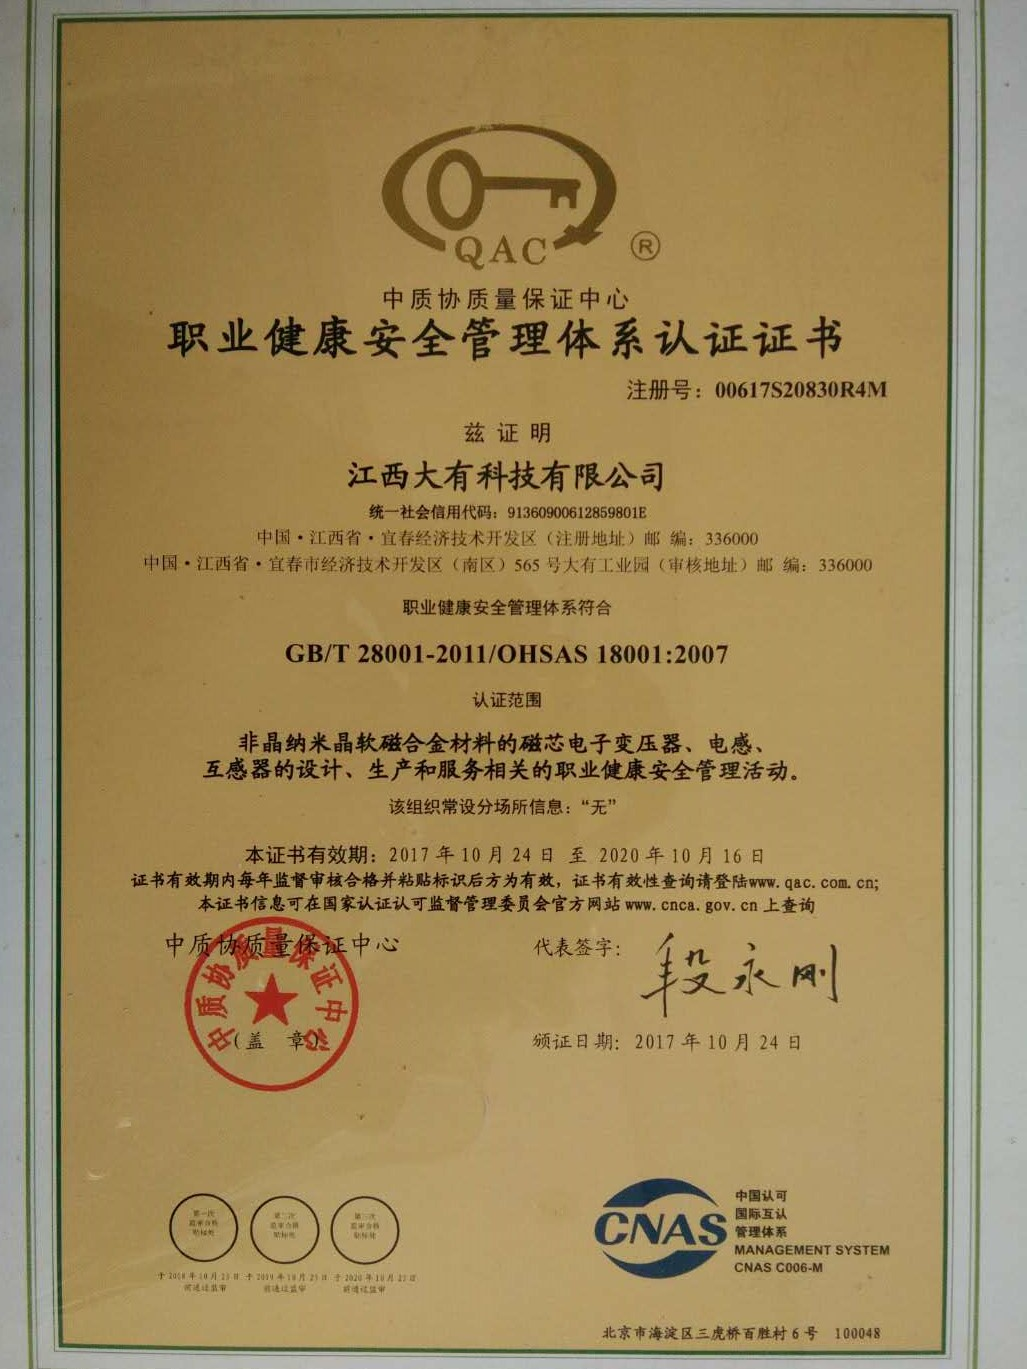 Certification of occupational health and safety management system